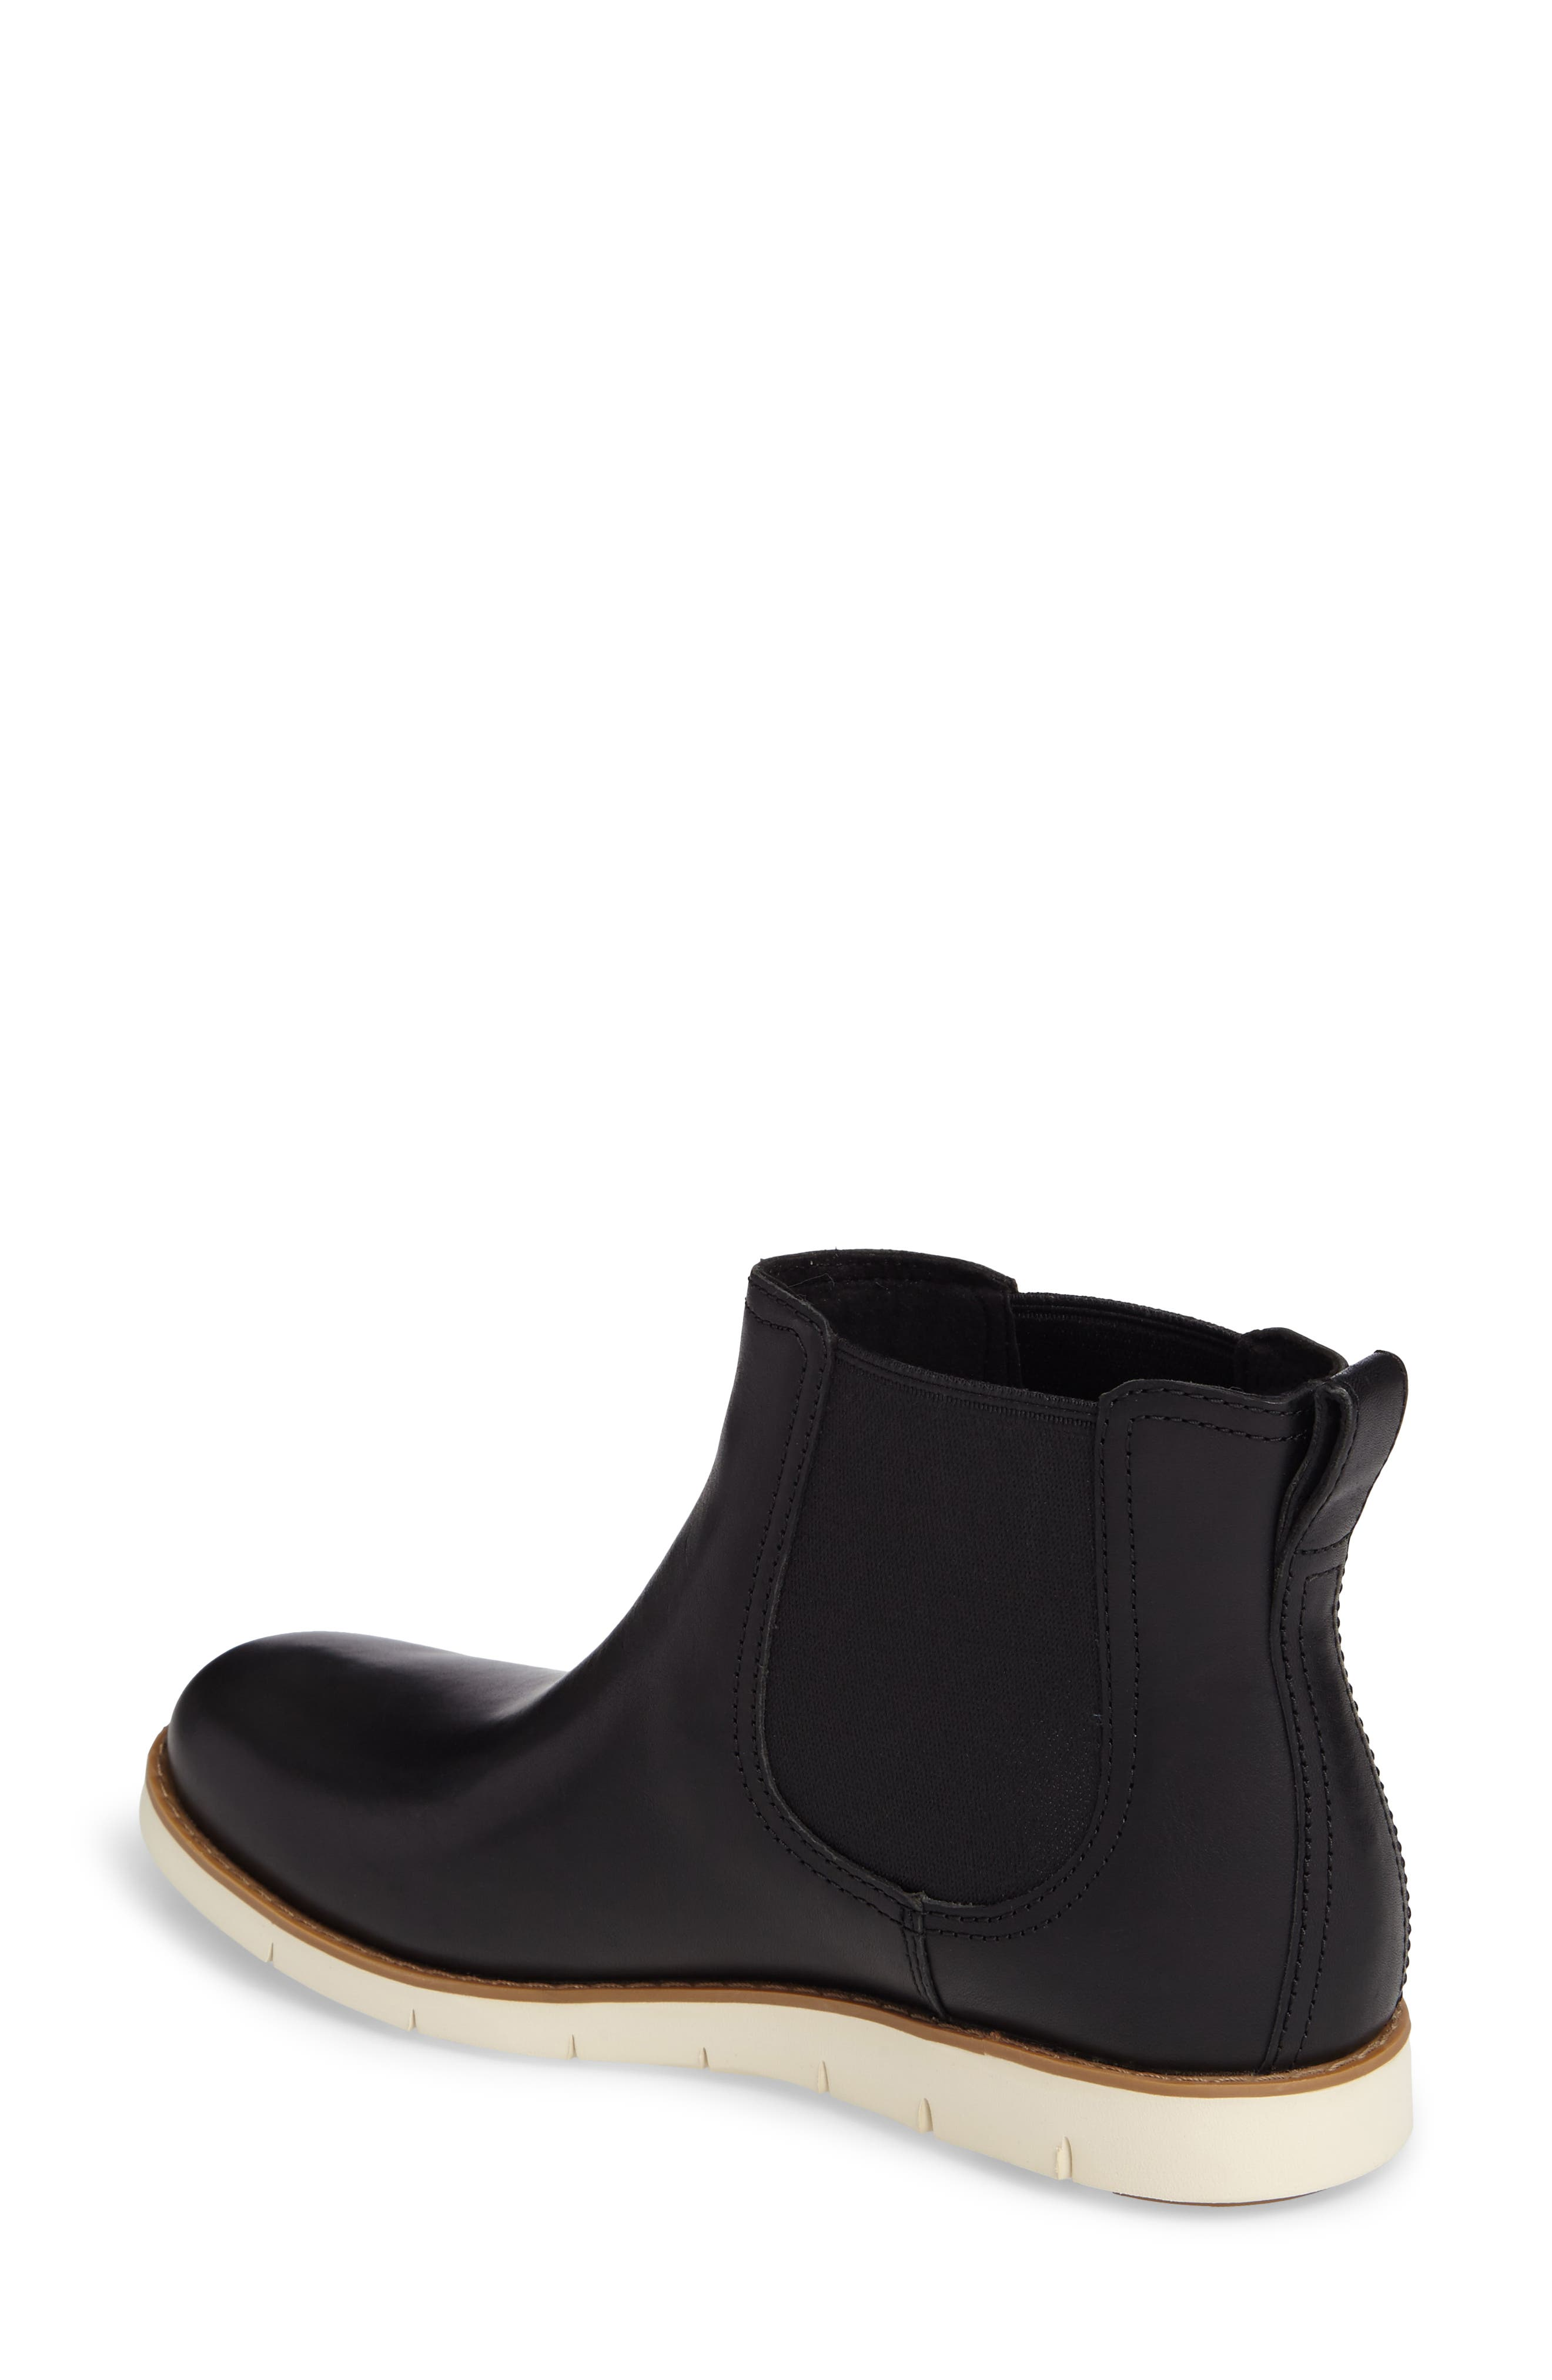 Alternate Image 2  - Timberland Lakeville Chelsea Boot (Women)